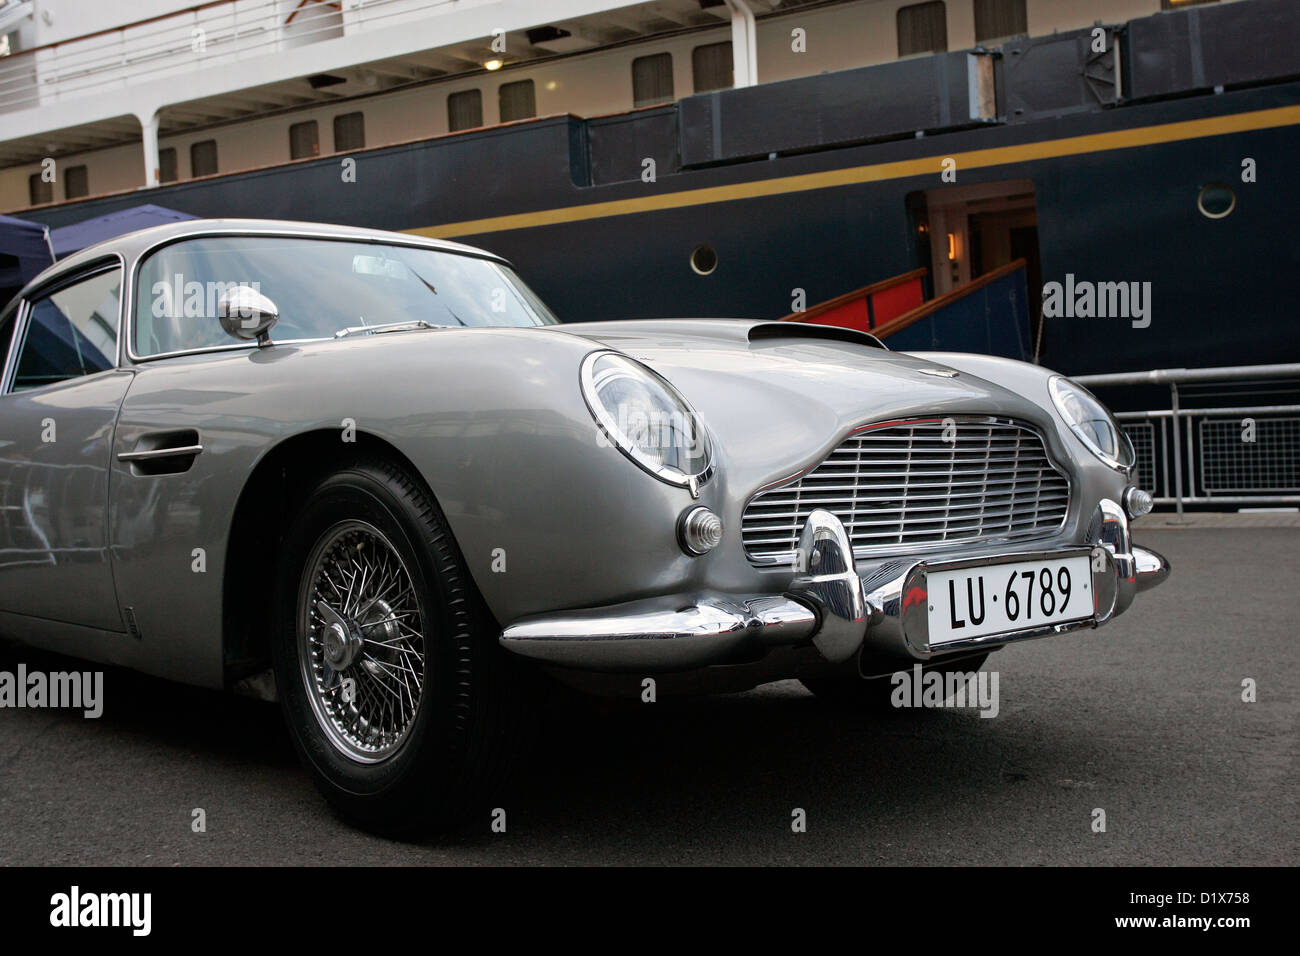 the original james bond aston martin db5 (sporting swiss number